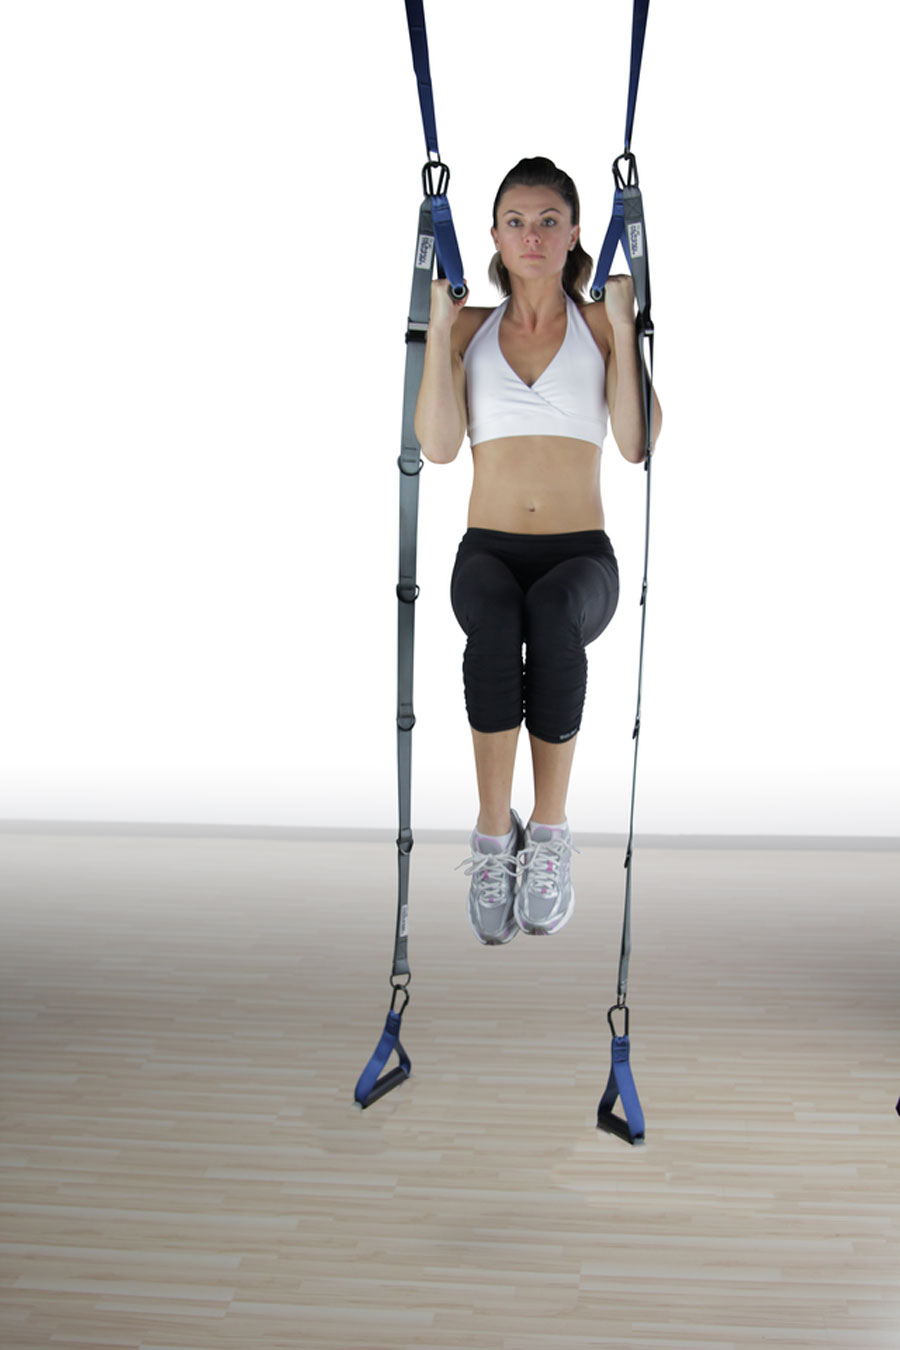 The Human Trainer Suspension Gym